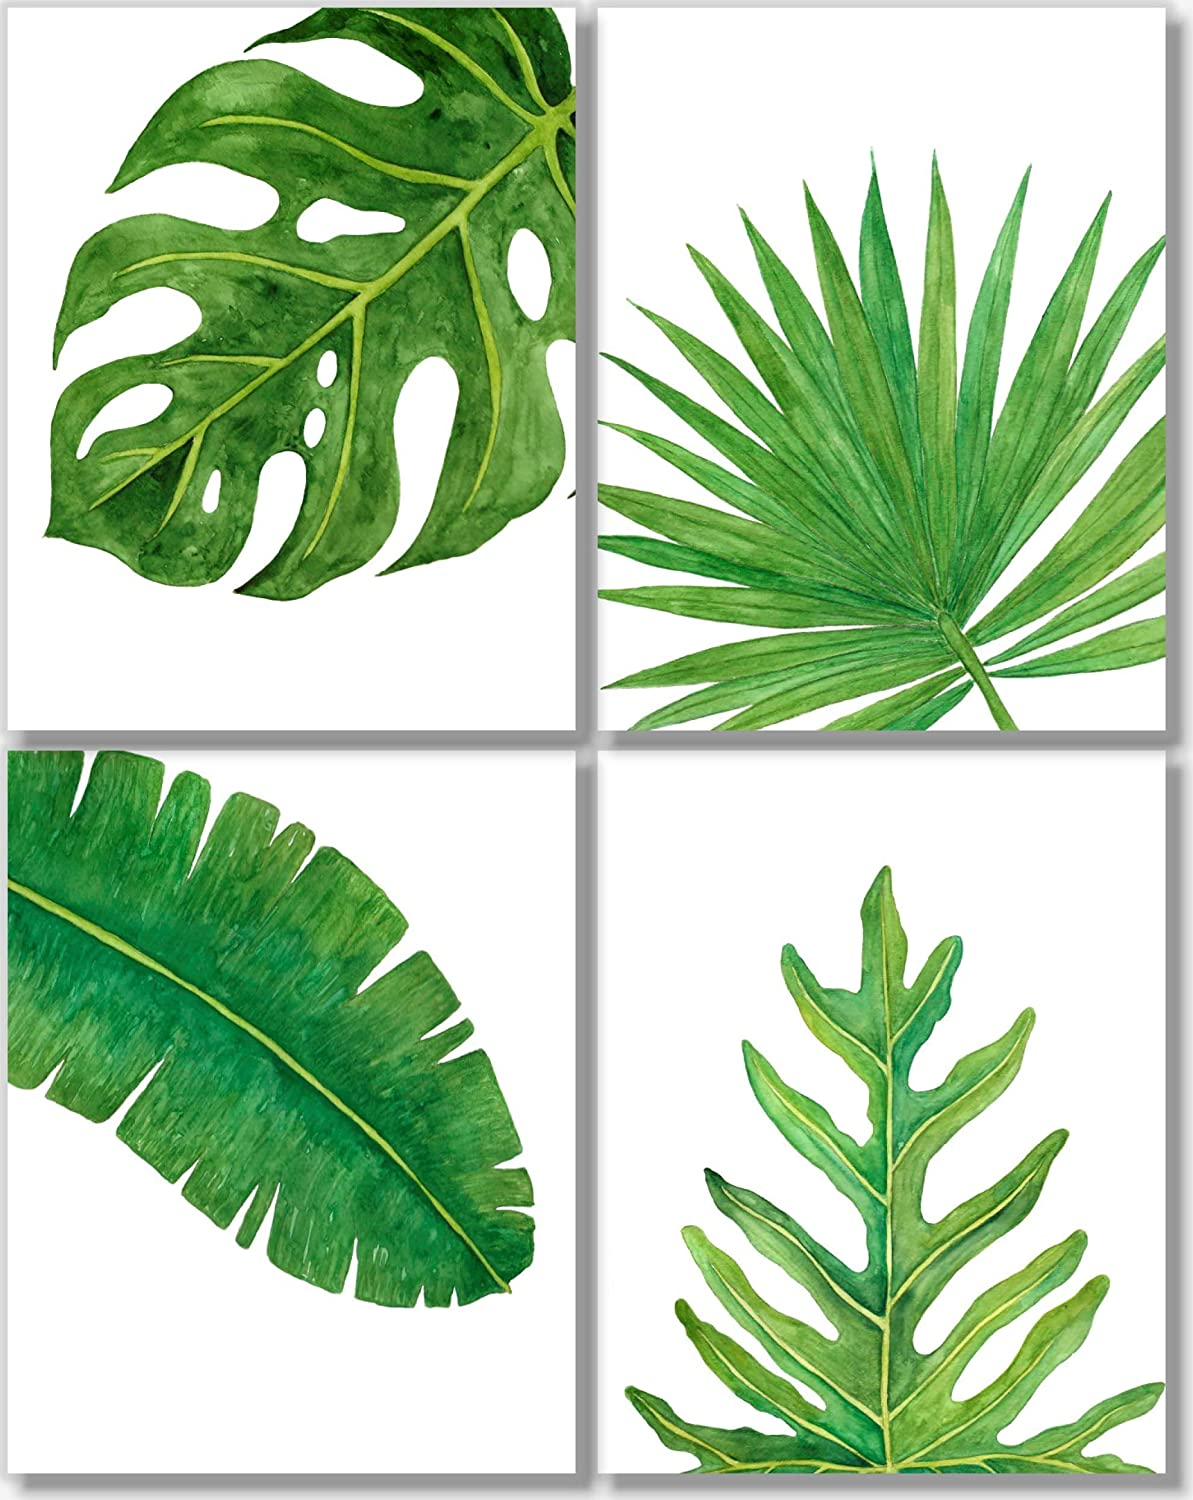 Amazon Com Tropical Leaves Art Prints Botanical Prints Wall Art Watercolor Monstera Date Palm Banana Leaf Decor Set Of 4 11x14 Unframed Handmade Find over 100+ of the best free tropical leaves images. tropical leaves art prints botanical prints wall art watercolor monstera date palm banana leaf decor set of 4 11x14 unframed